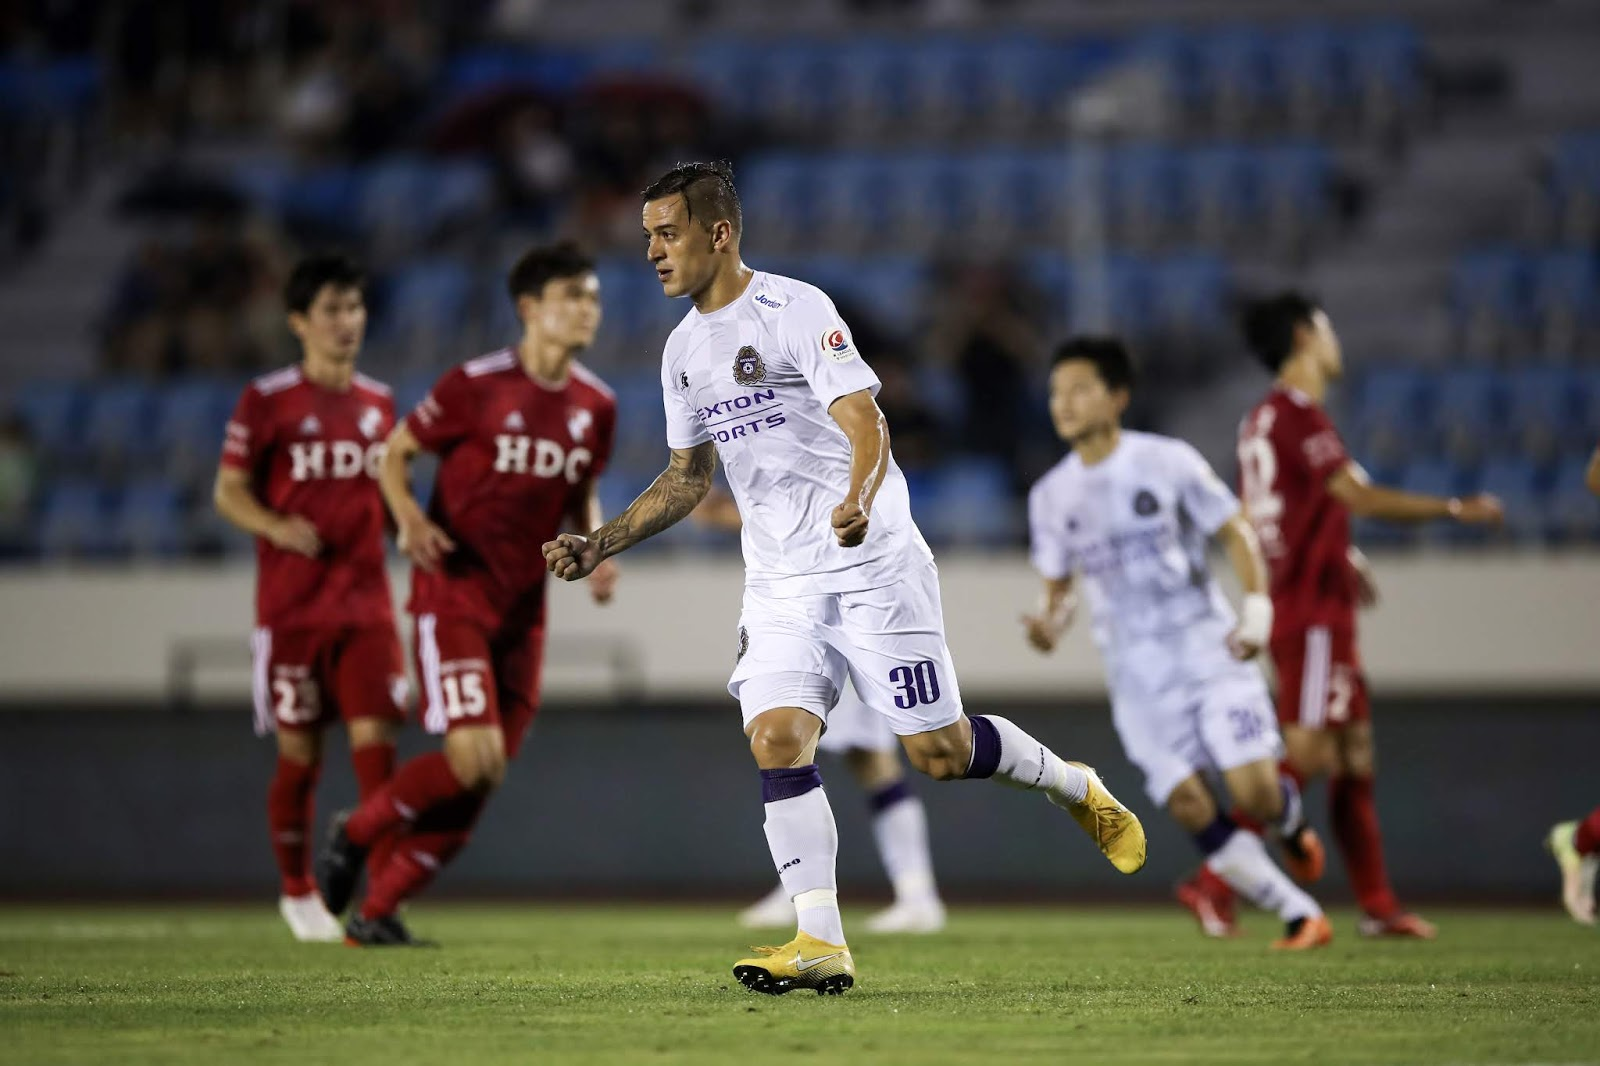 Preview: Daejeon Citizen vs FC Anyang K League 2 Wesley Alex